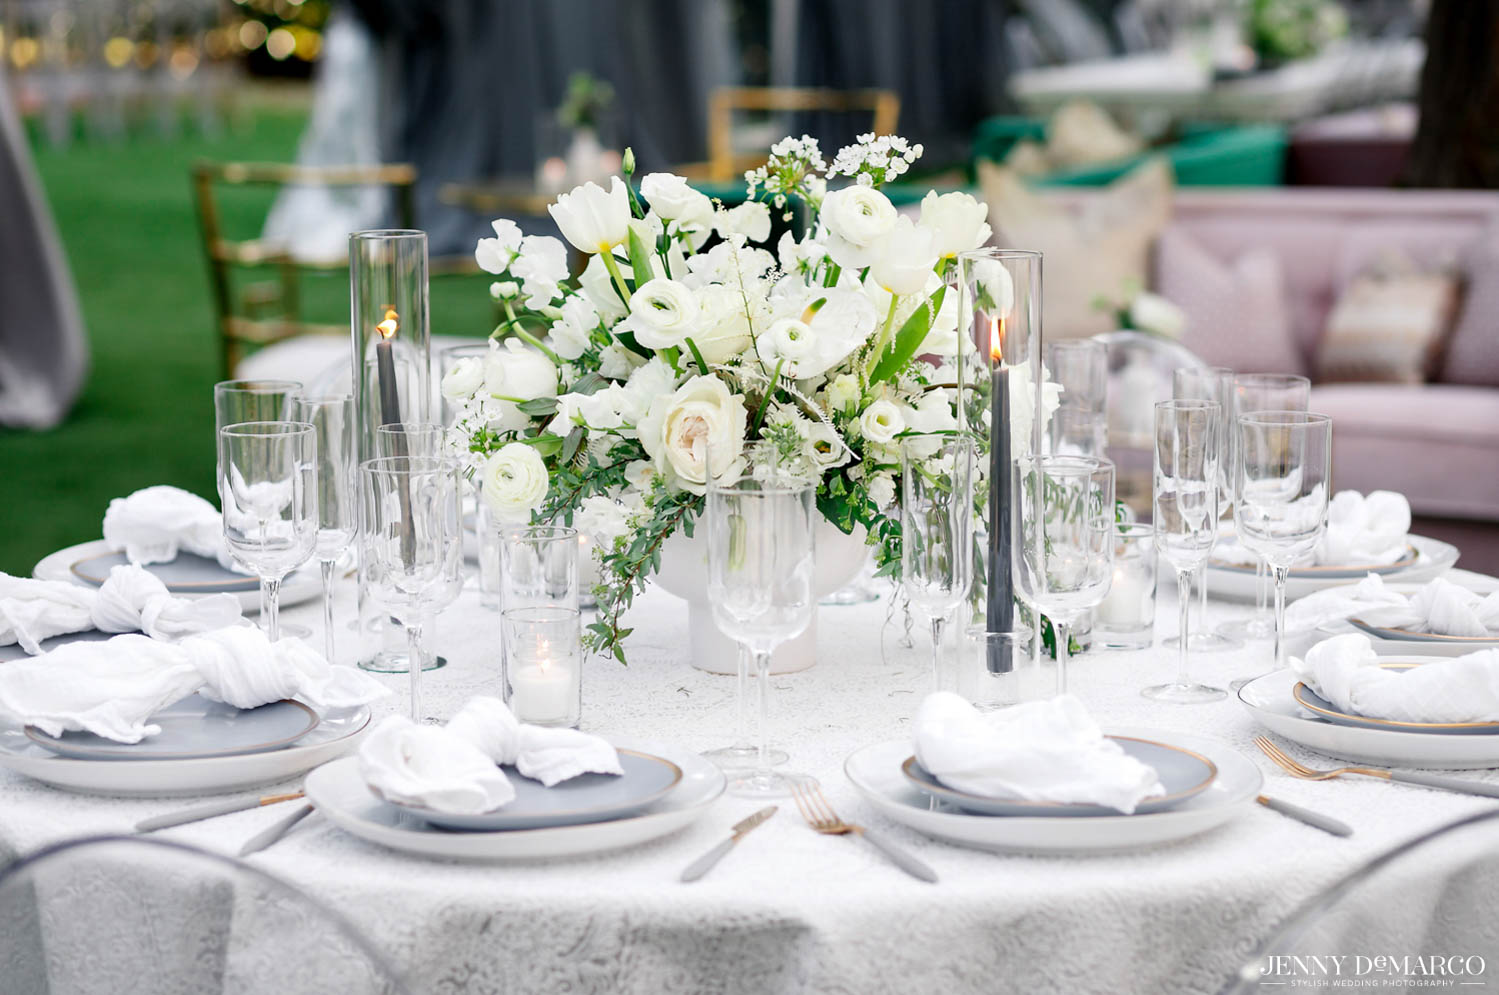 set dinner table with white floral in center